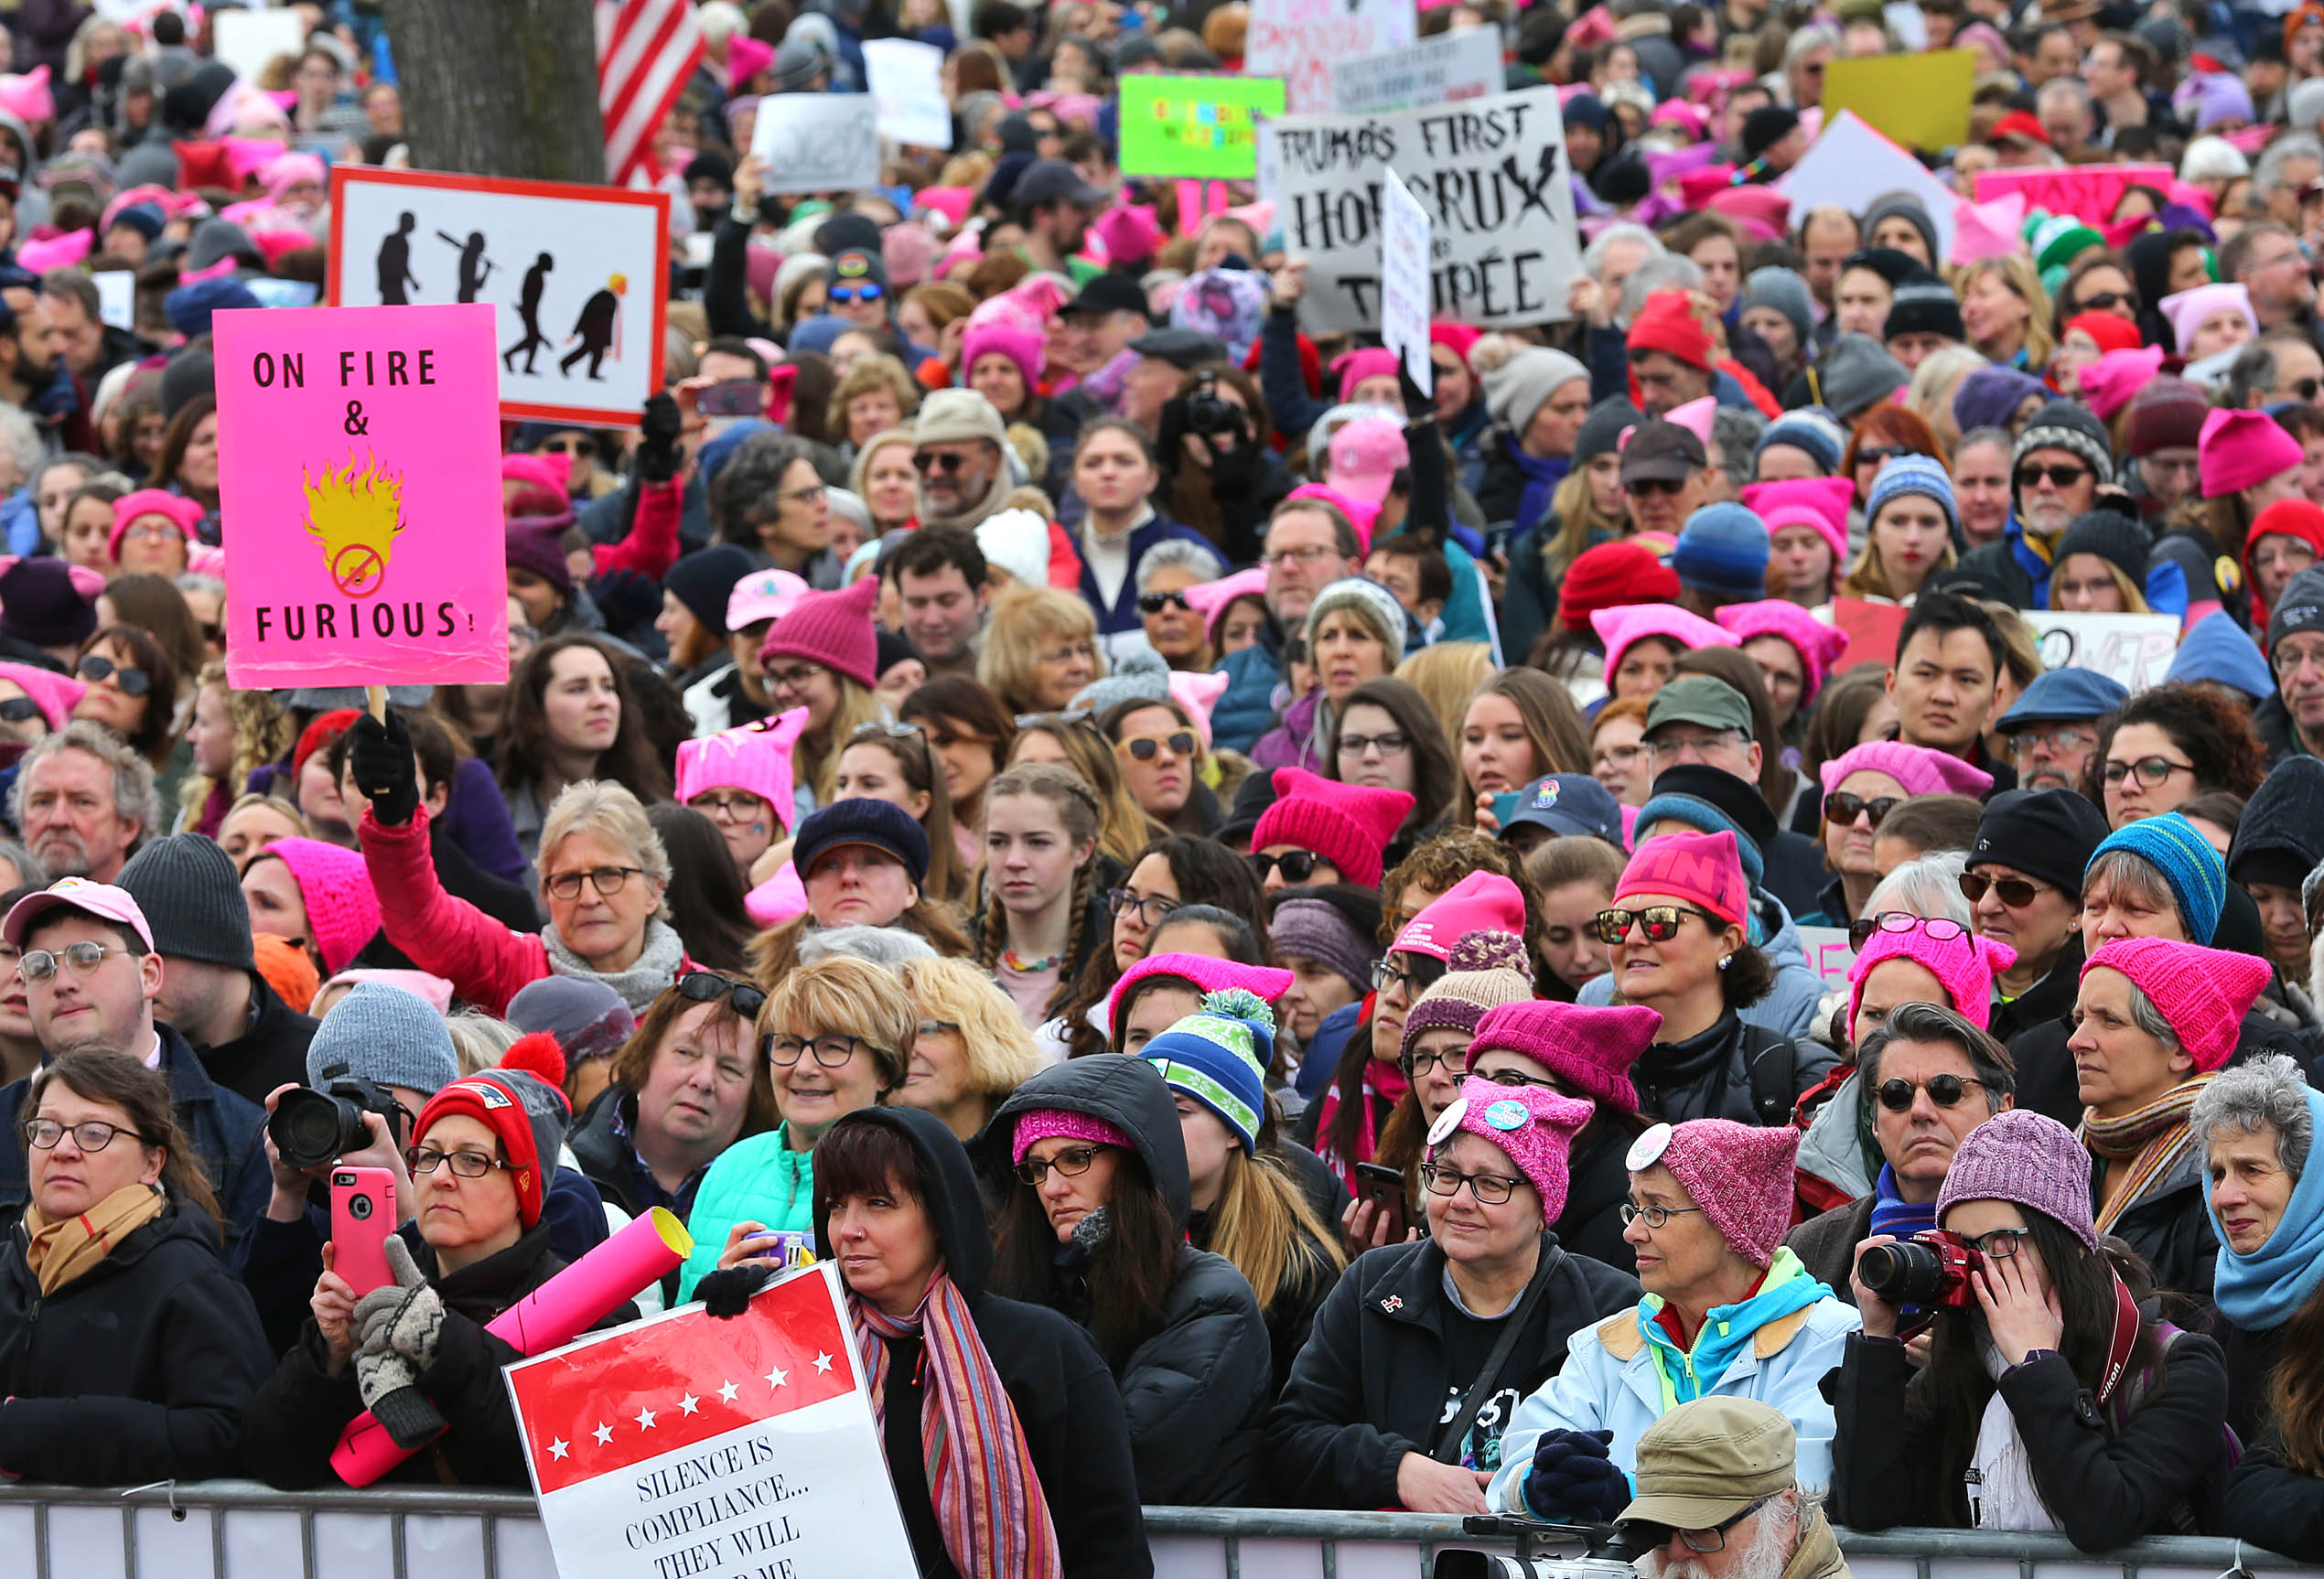 b16919f005e587 One year later, thousands gather for second Boston women's march - The  Boston Globe